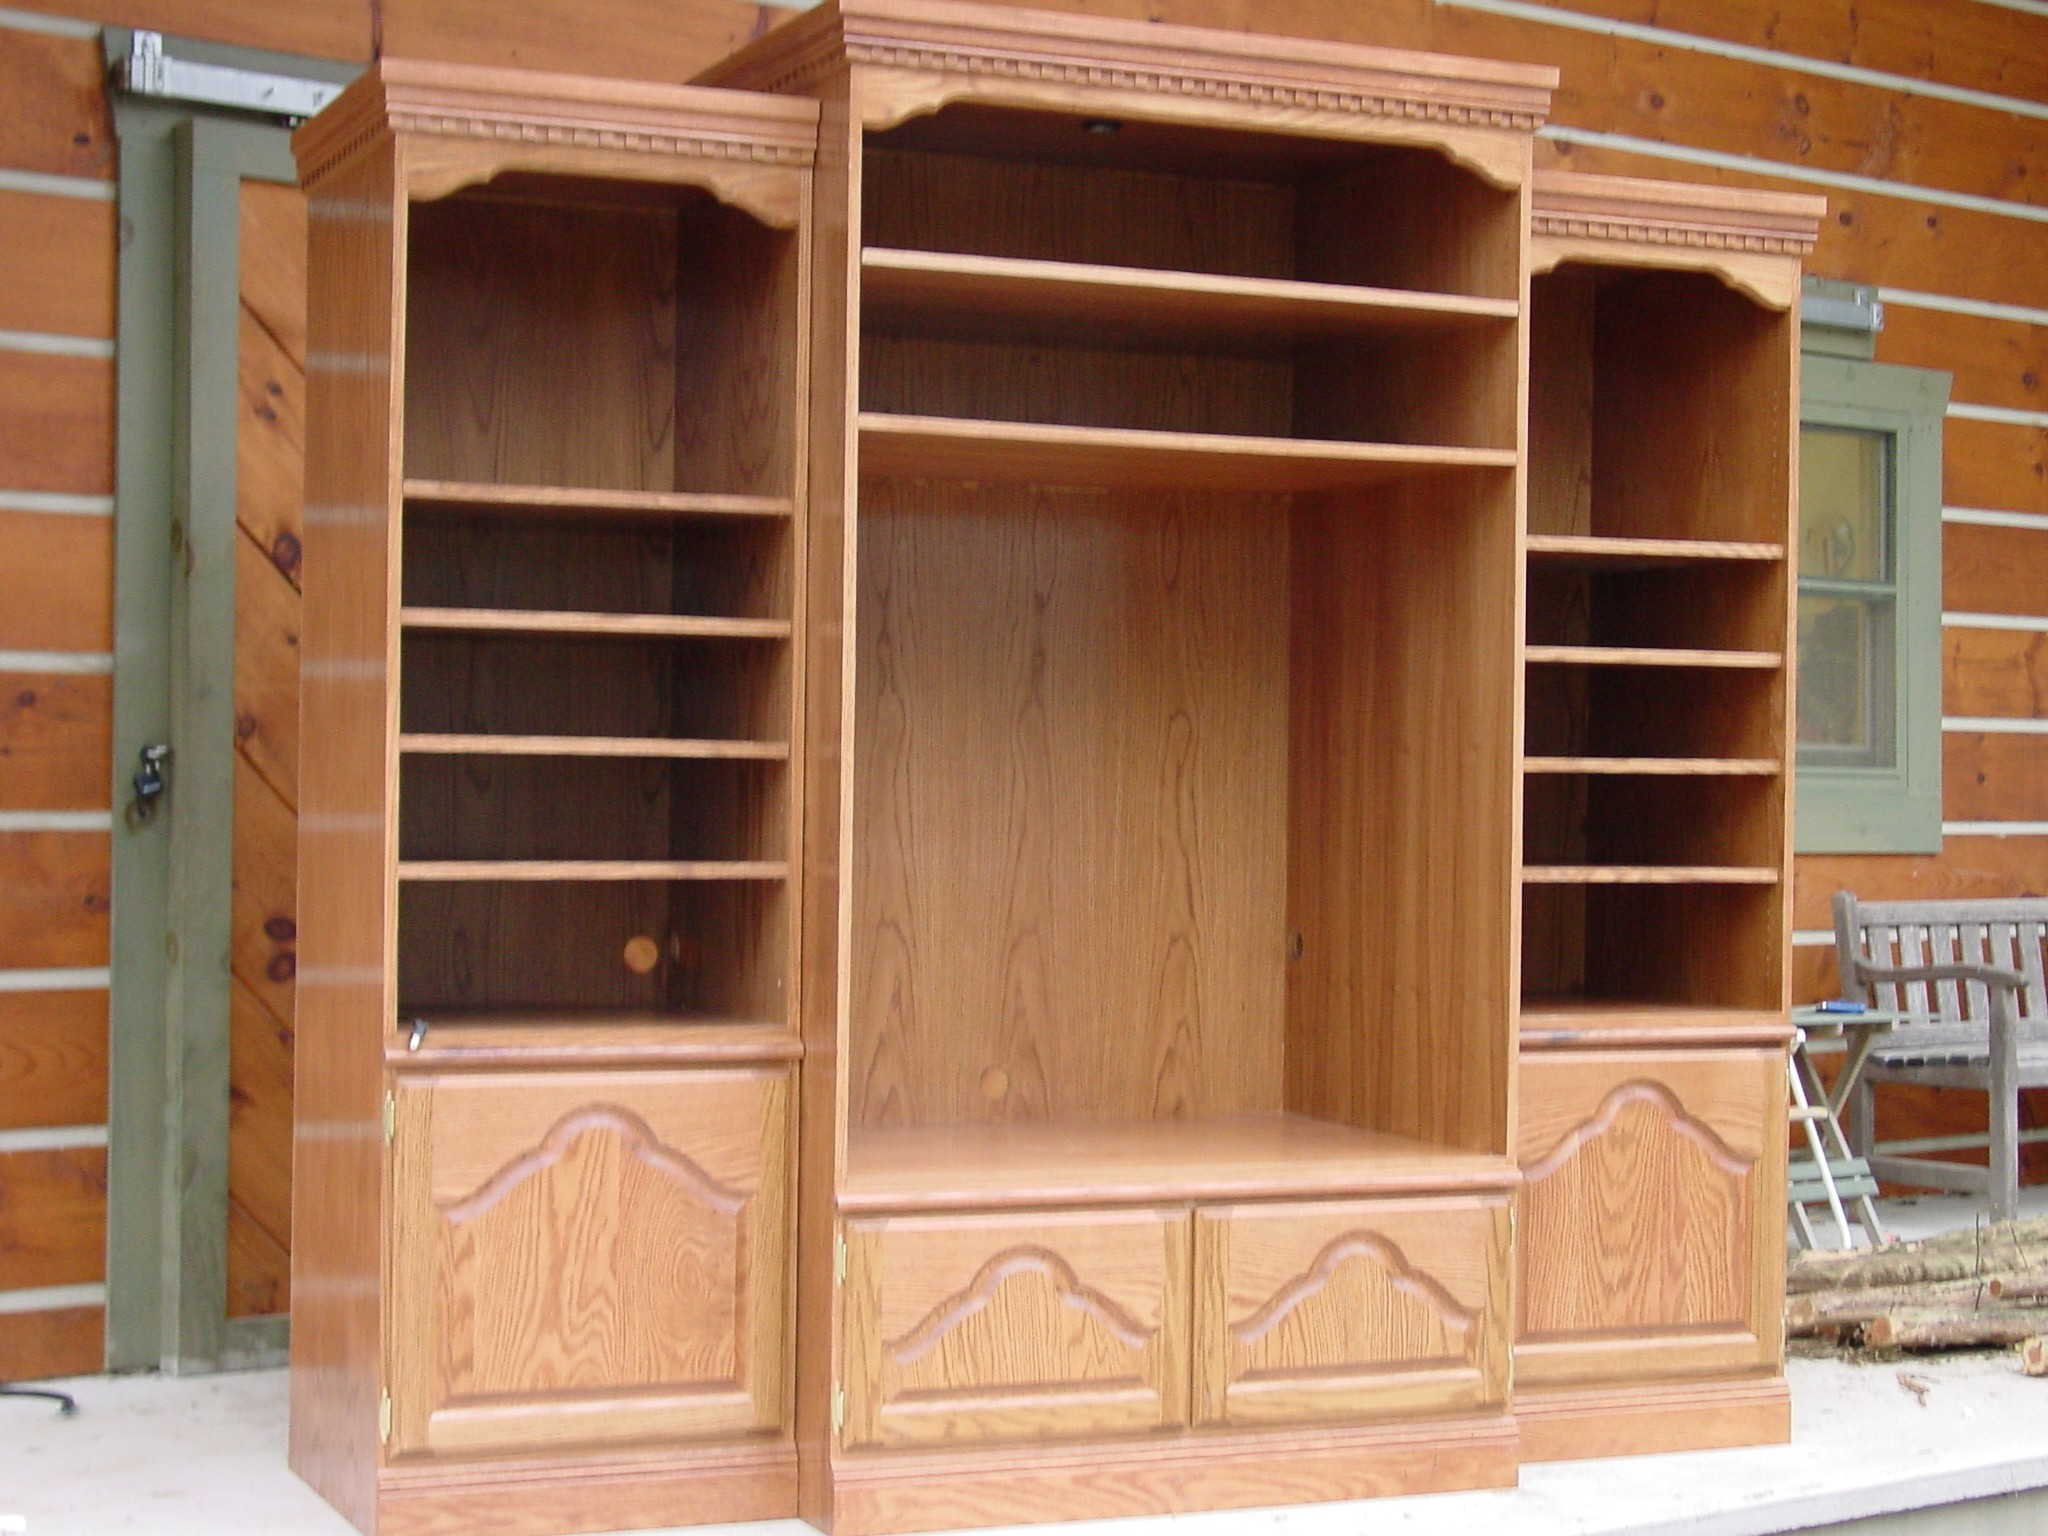 furniture 049.jpg